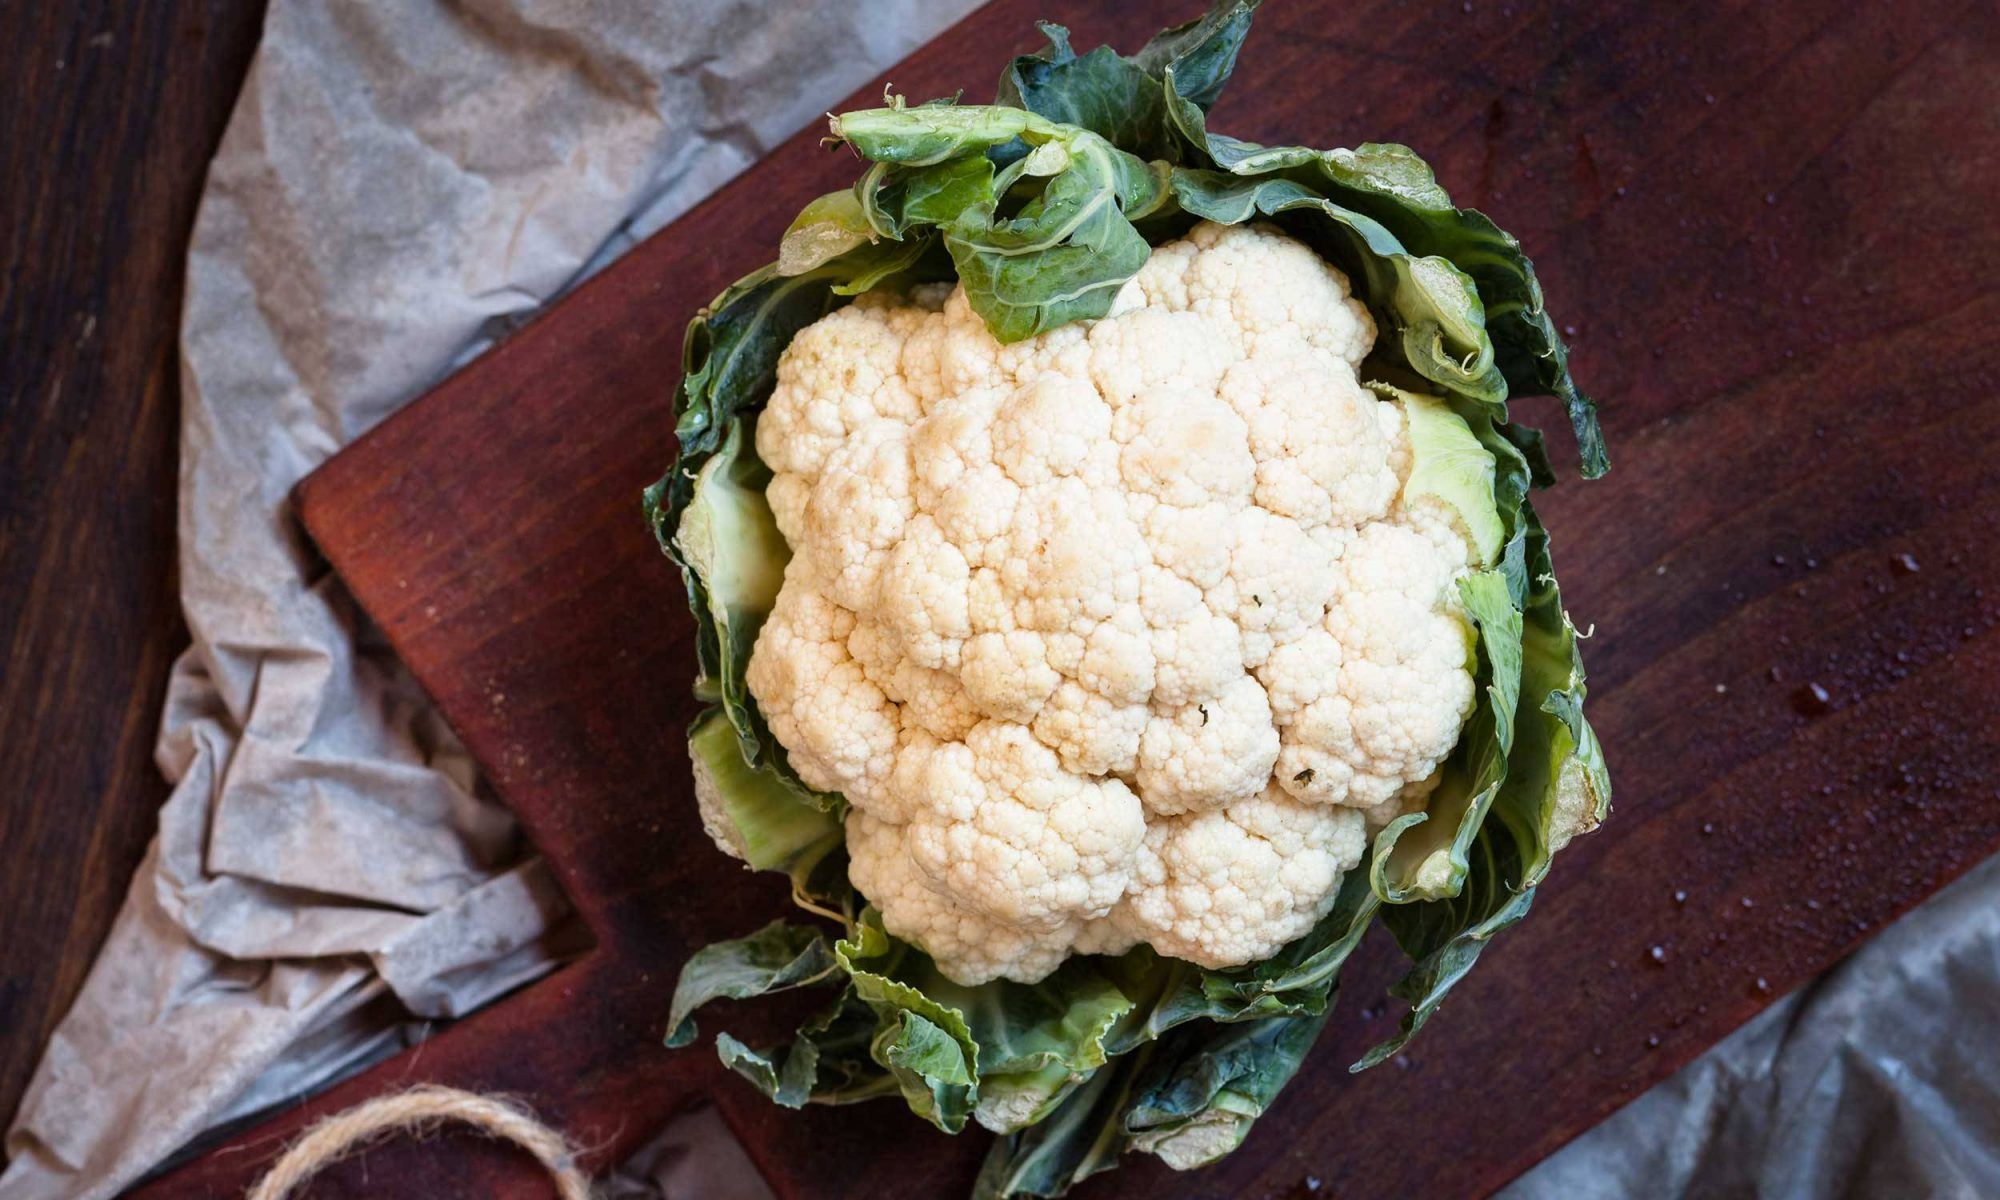 EC: How to Store Cauliflower So It Doesn't Turn Brown